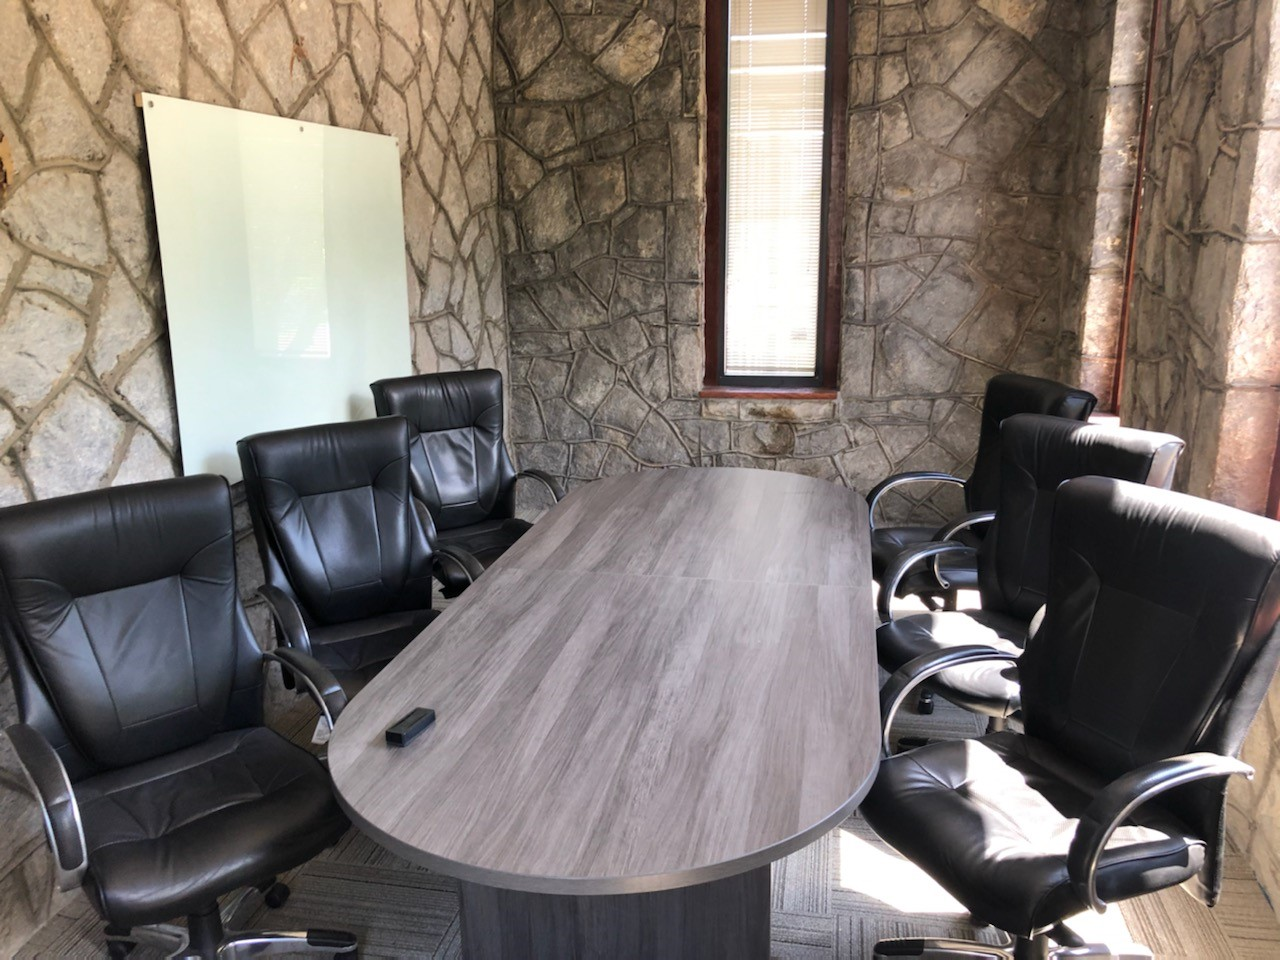 Small conference room that seat 4 to 6 people